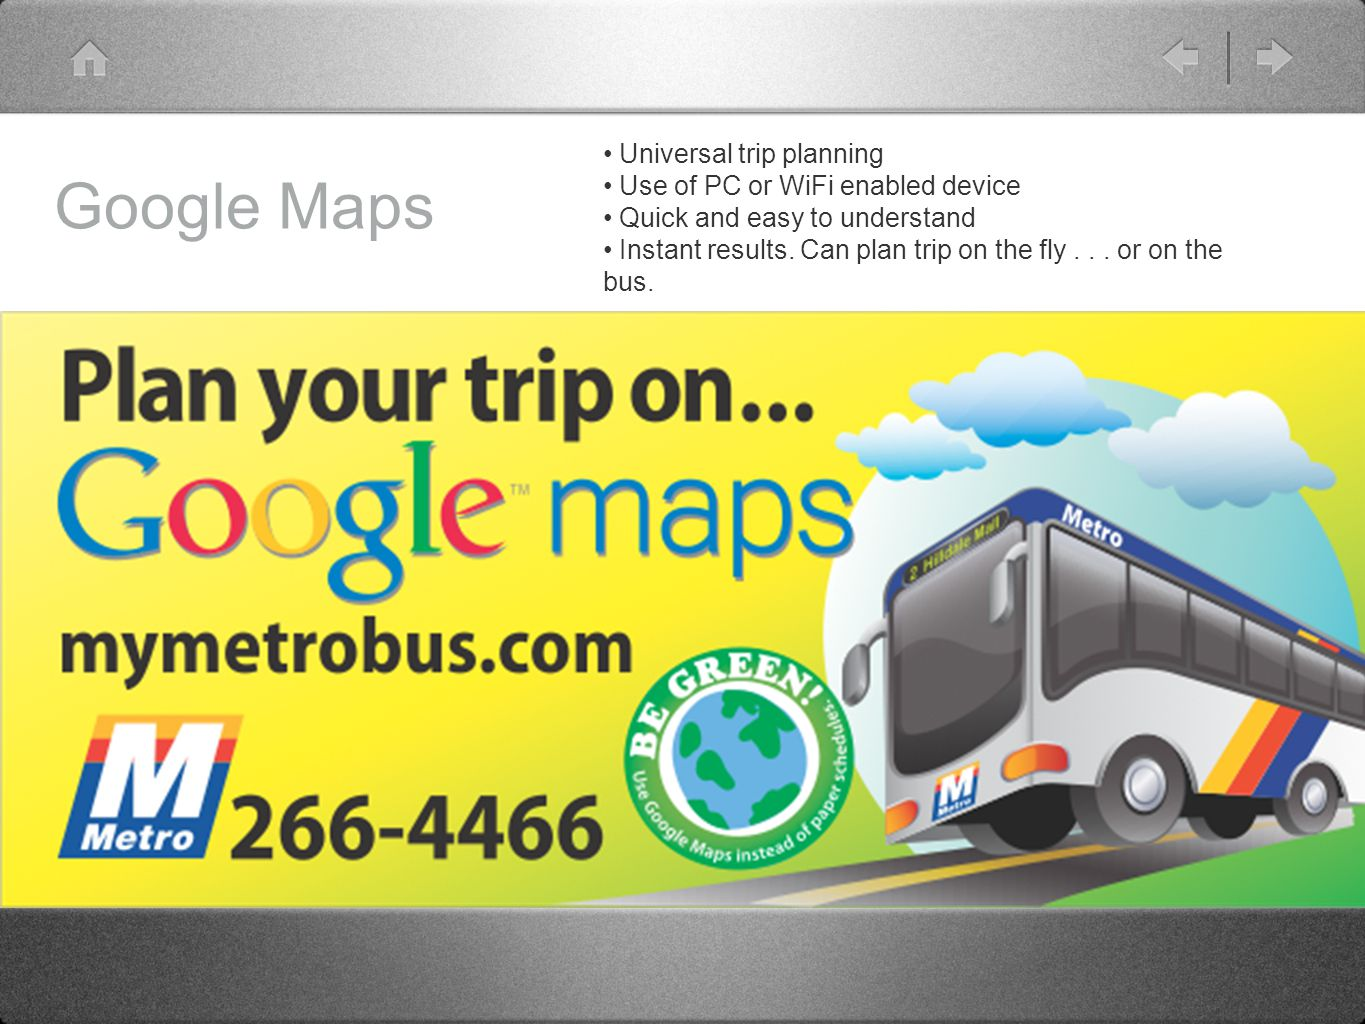 Google Maps Universal trip planning Use of PC or WiFi enabled device Quick and easy to understand Instant results.